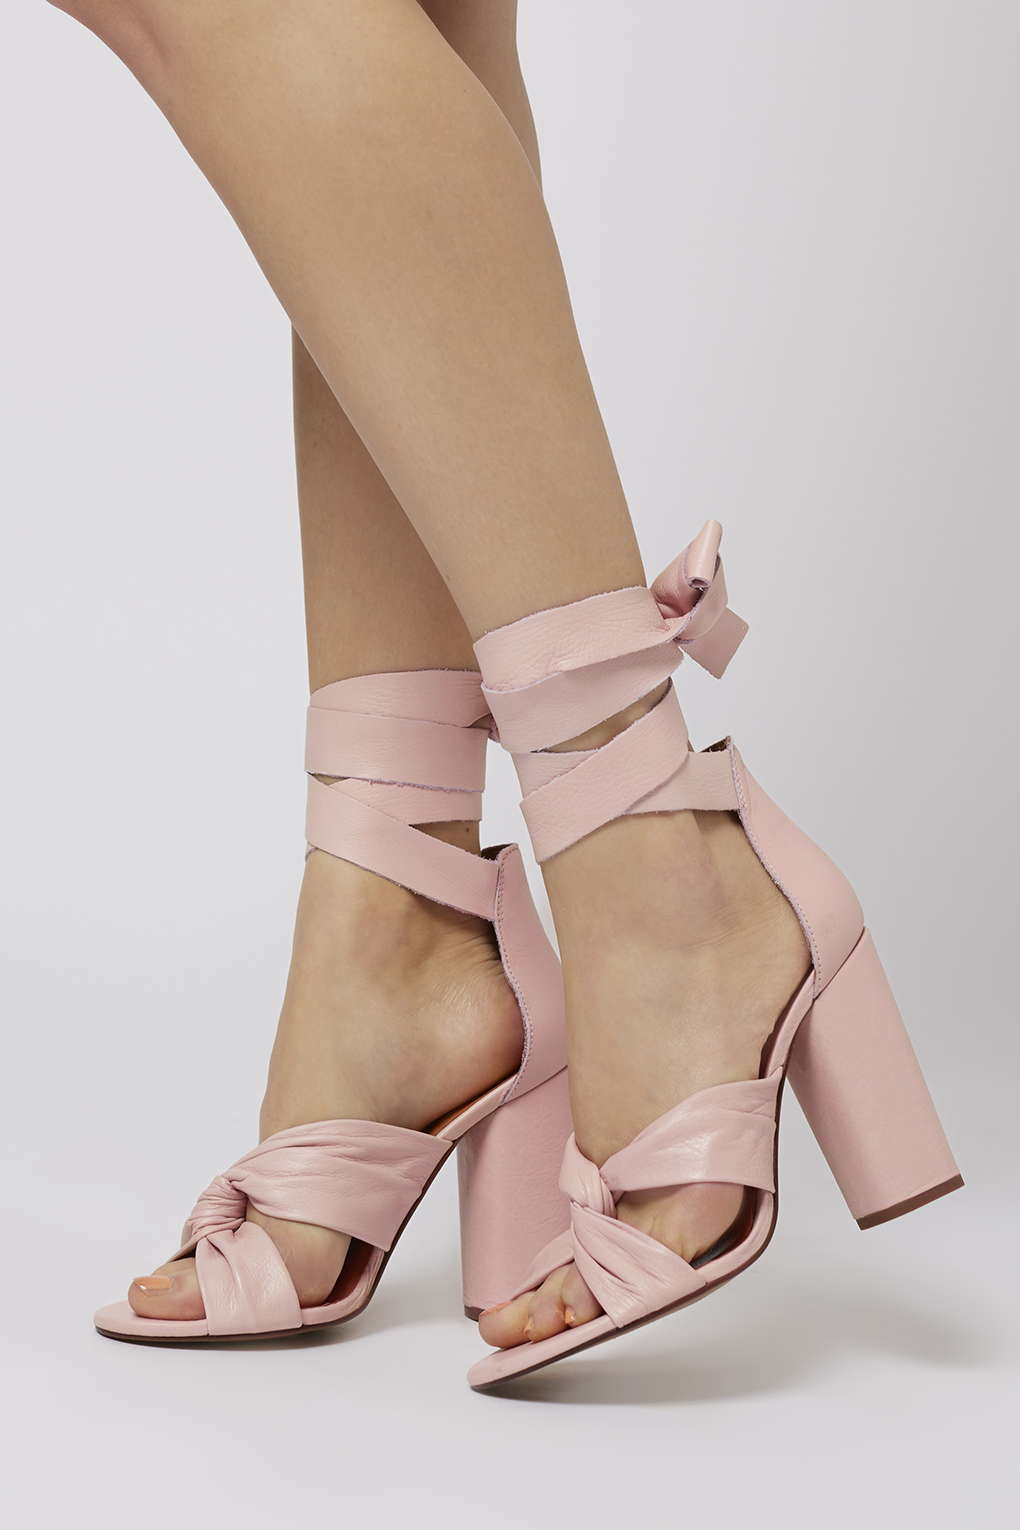 Topshop Rosa Knotted High Sandals in Pink | Lyst